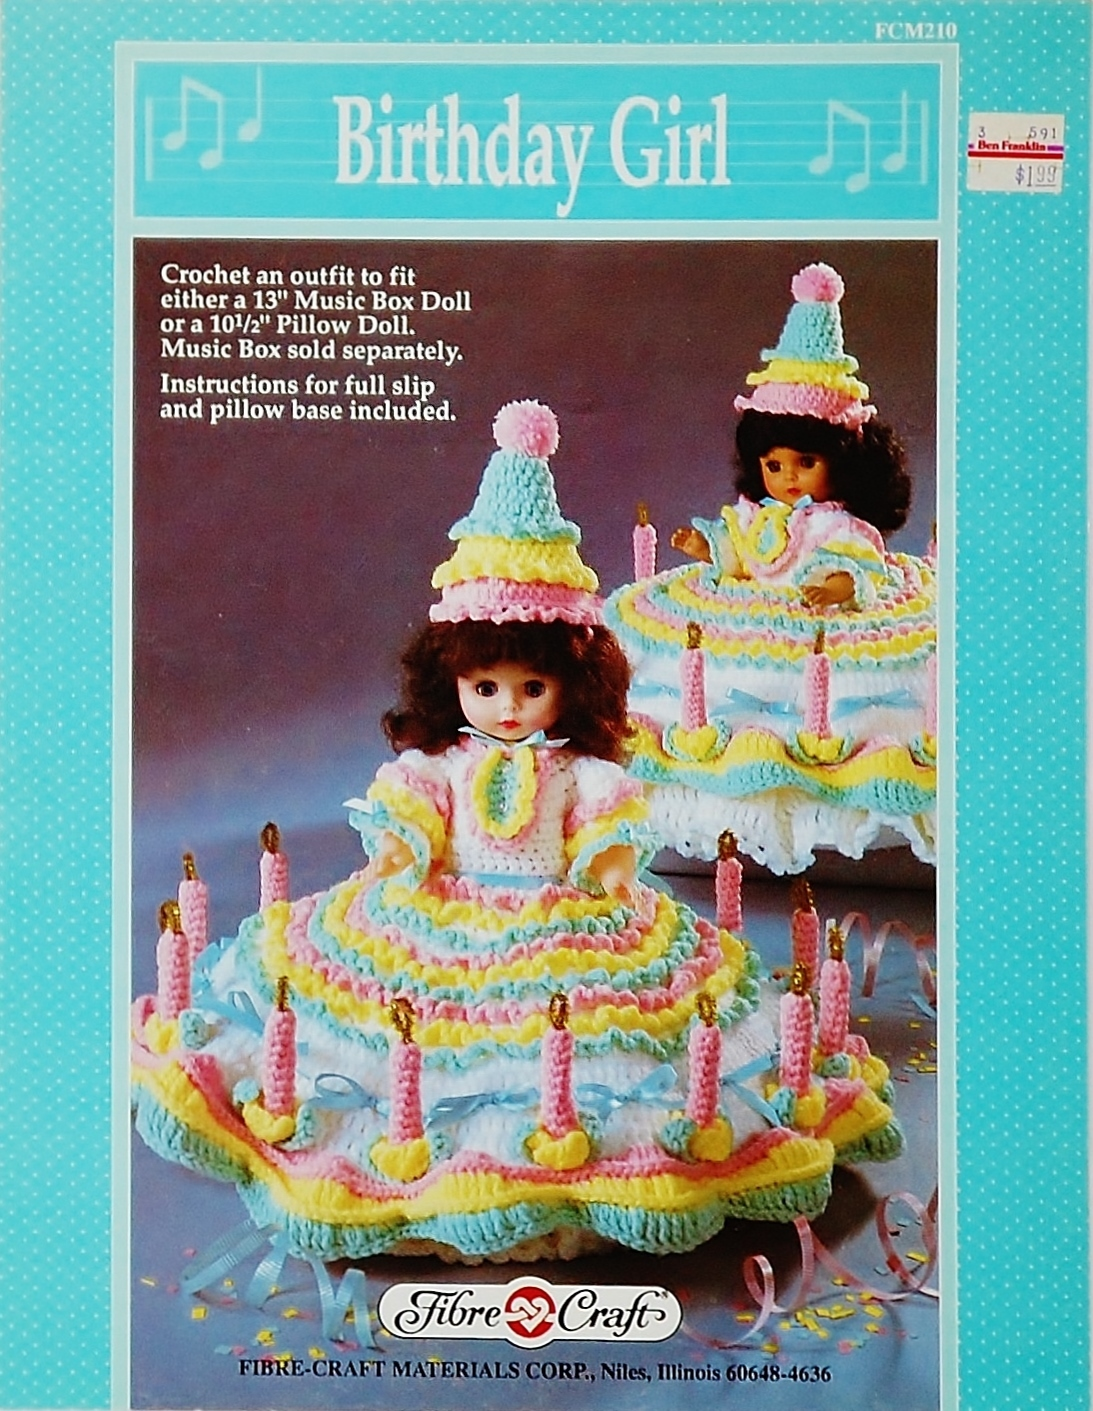 Fibre Craft Birthday Girl Crochet Pattern Leaflet FCM 210